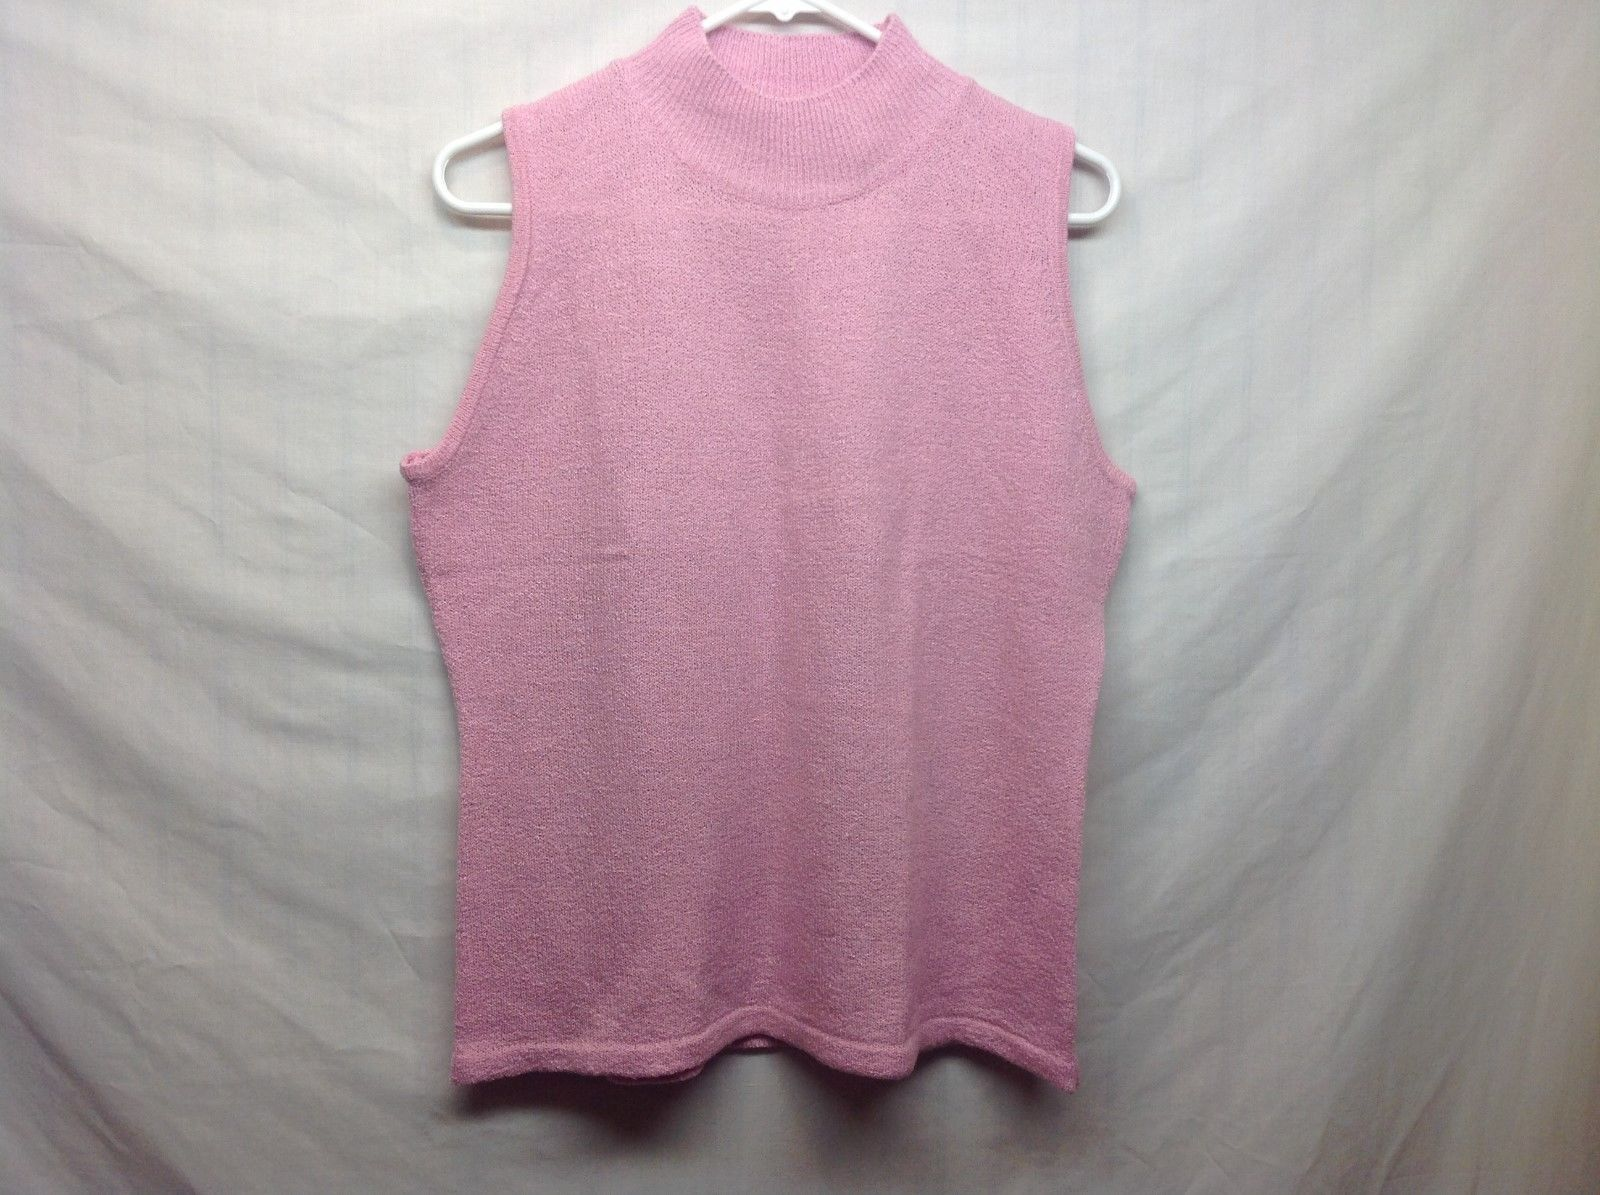 Ladies Sleeveless Pink Sweater by Carolyn Taylor Essentials Sz LG